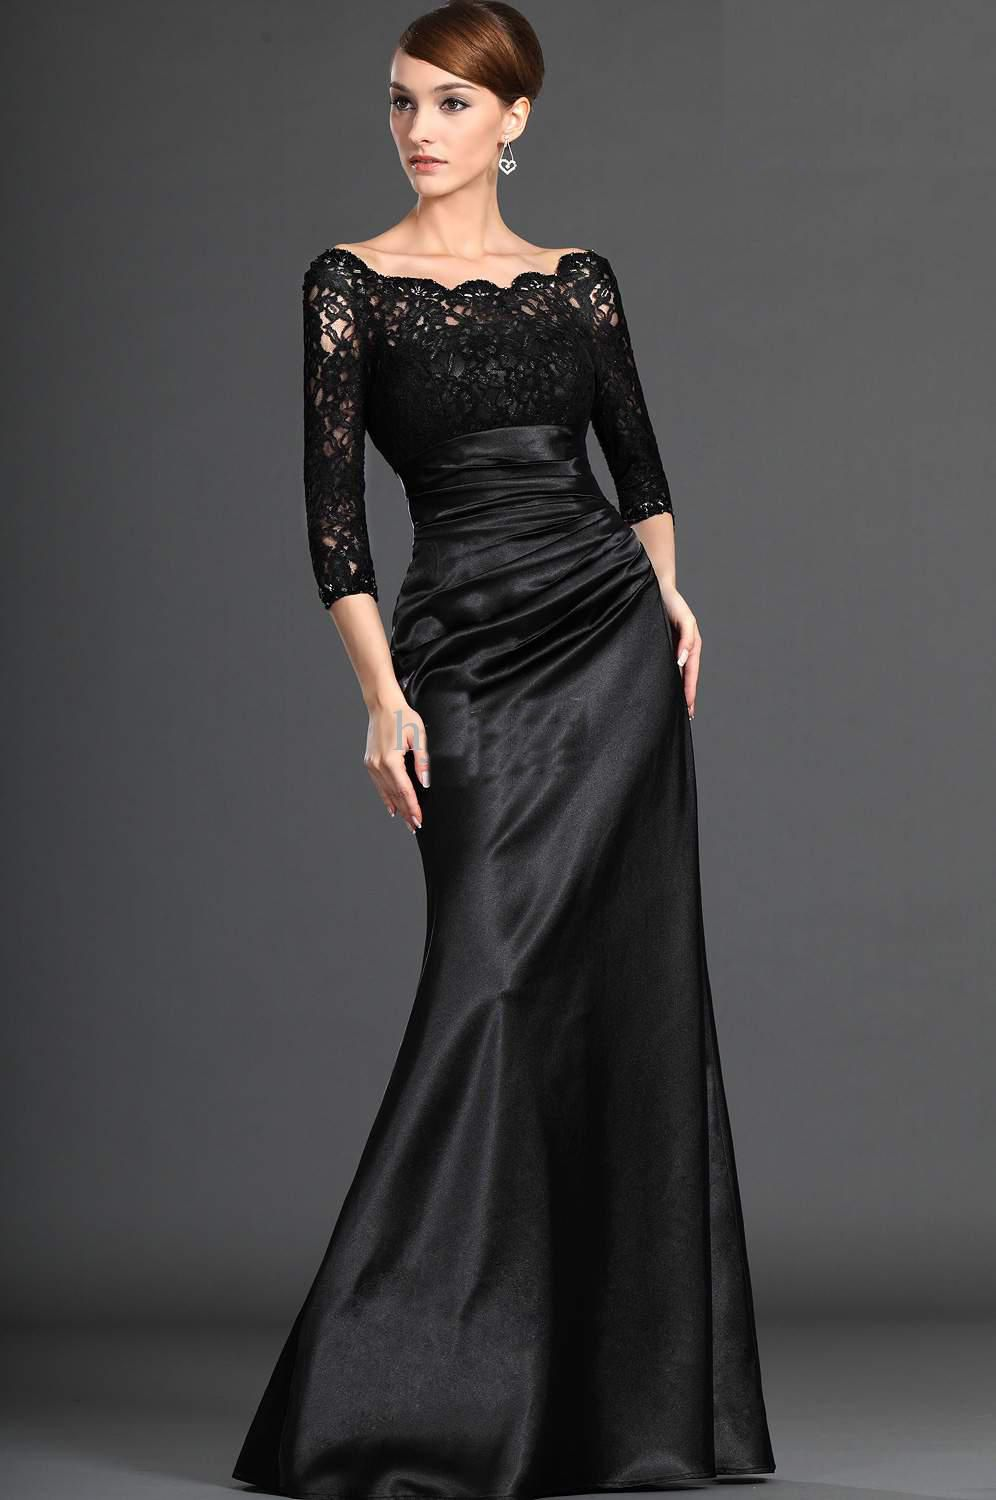 Black long sleeve wedding dresses  long black bridesmaid dresses   Size Black LongSleeve Wedding